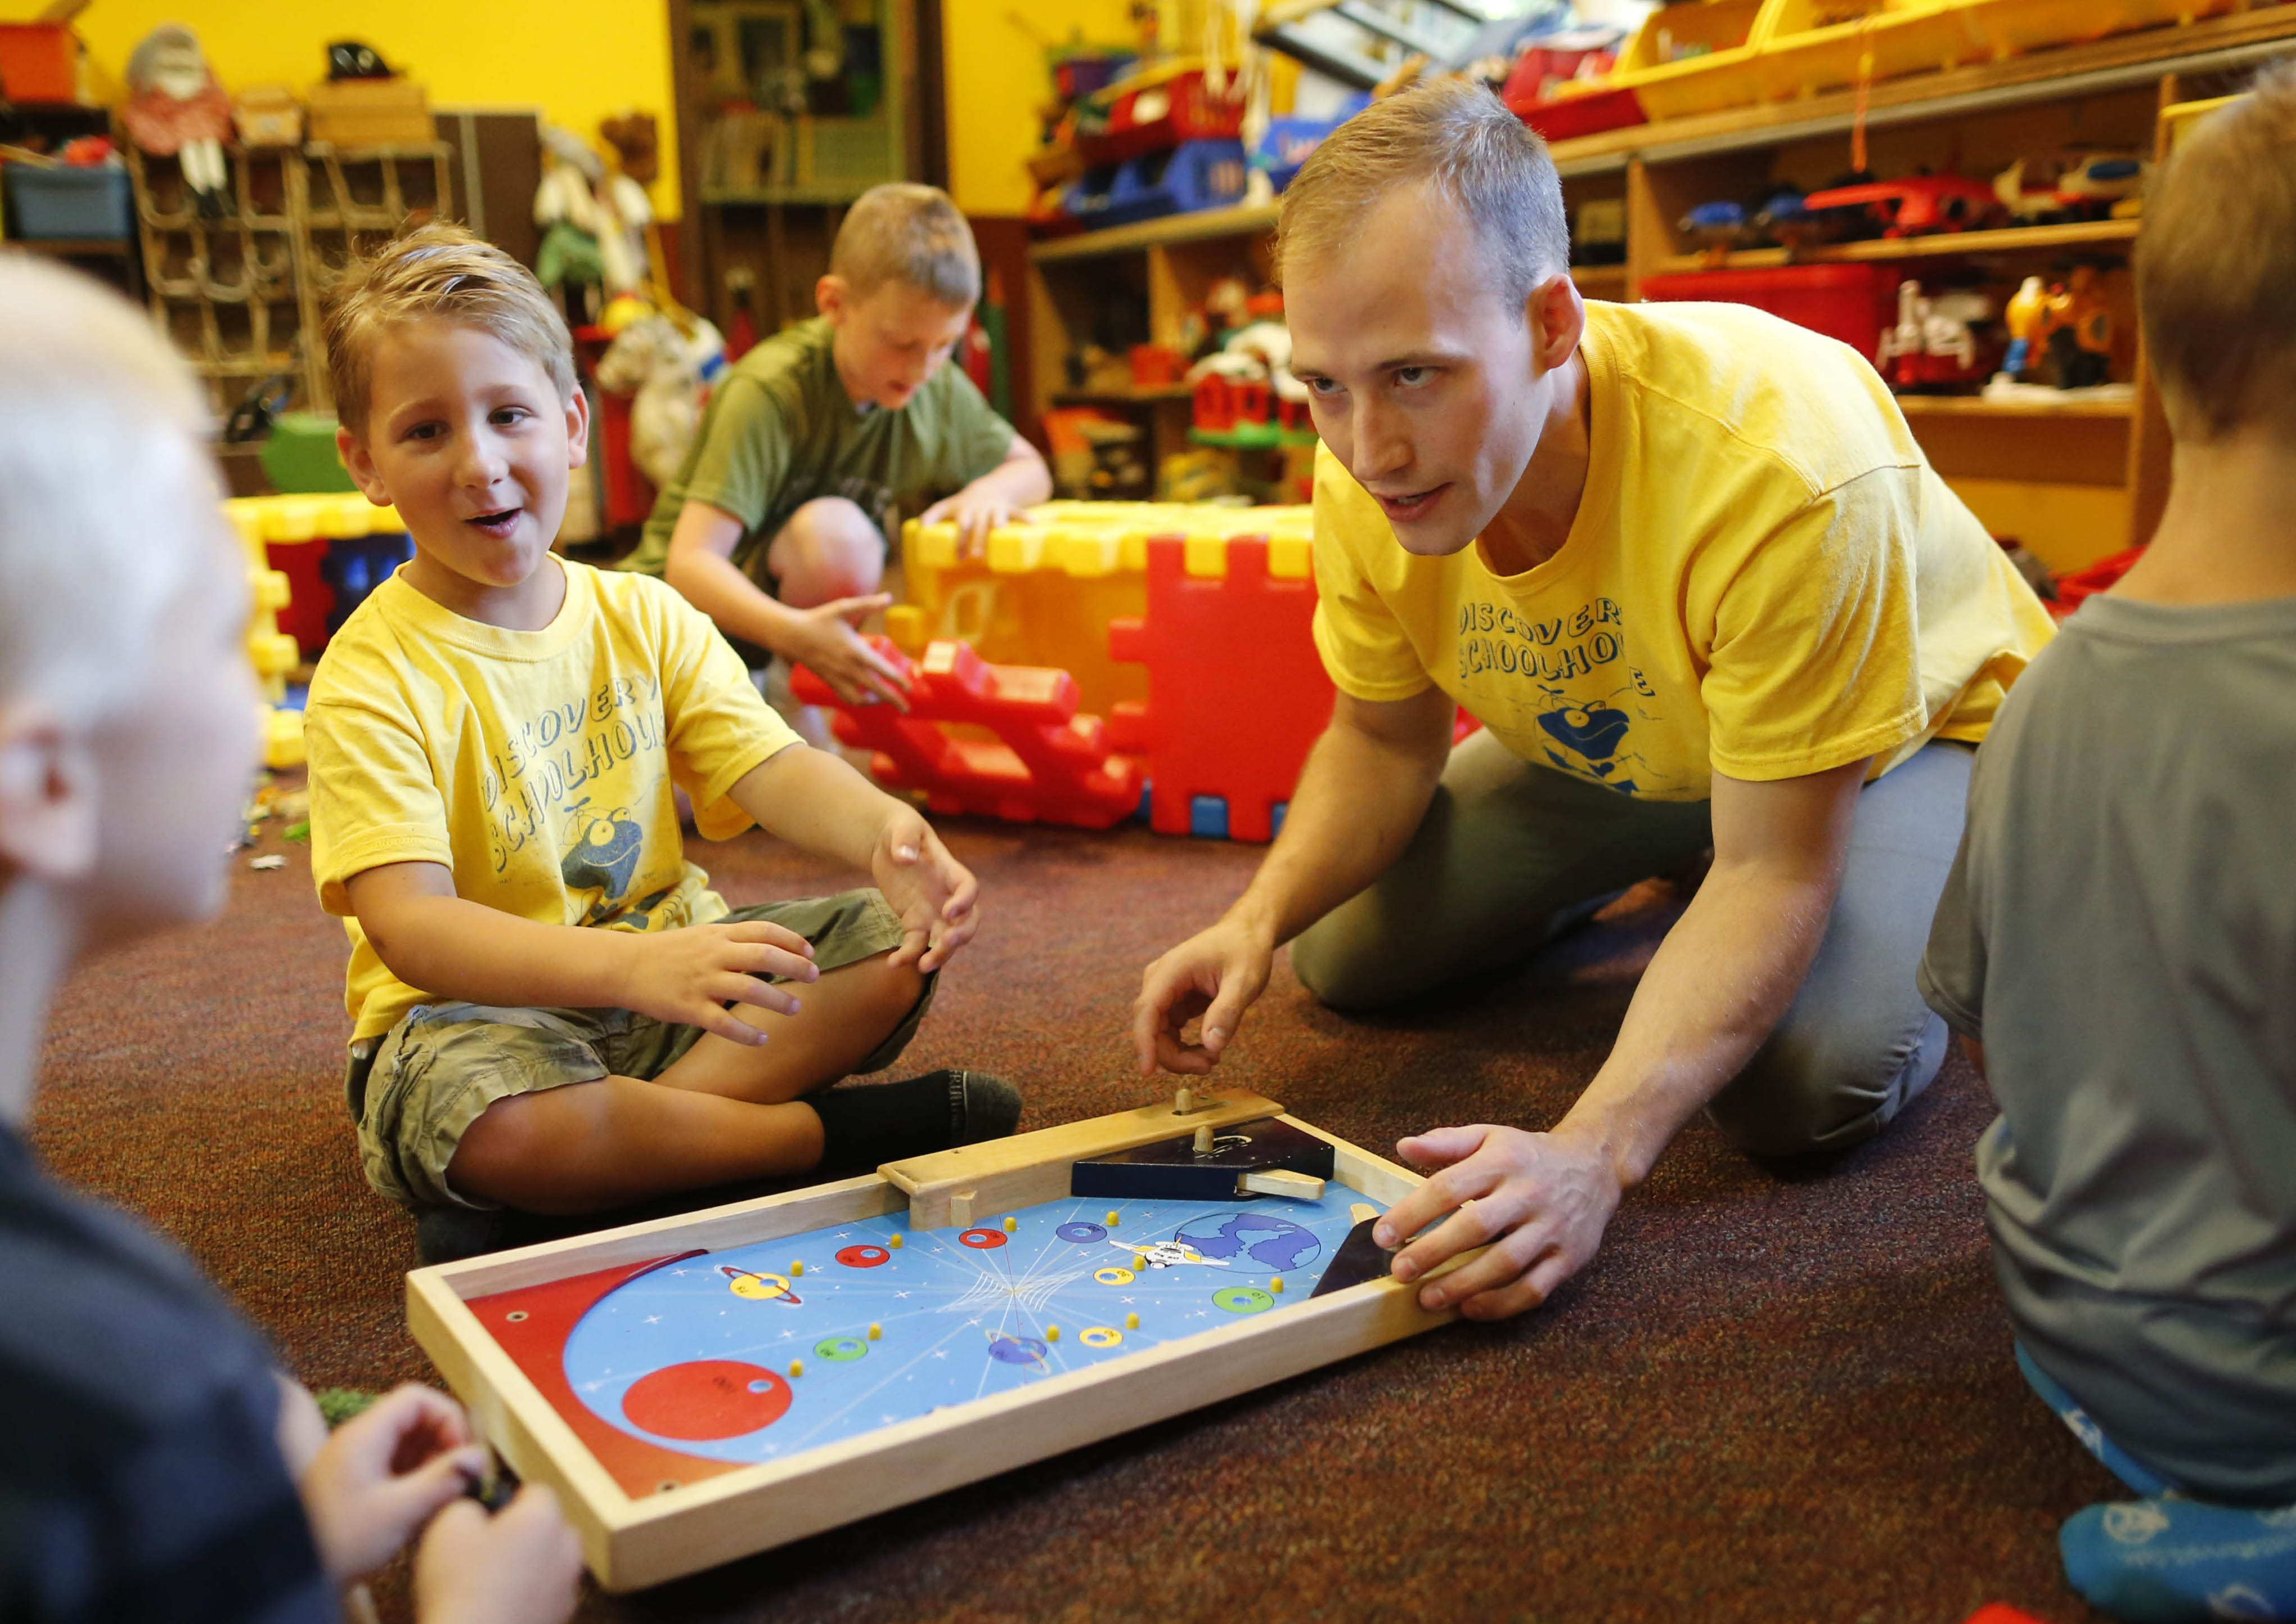 John Maher, the new owner of the Discovery Schoolhouse in Hamburg, plays with students during free play, Tuesday, Aug. 2, 2016.  (Photo by Derek Gee)